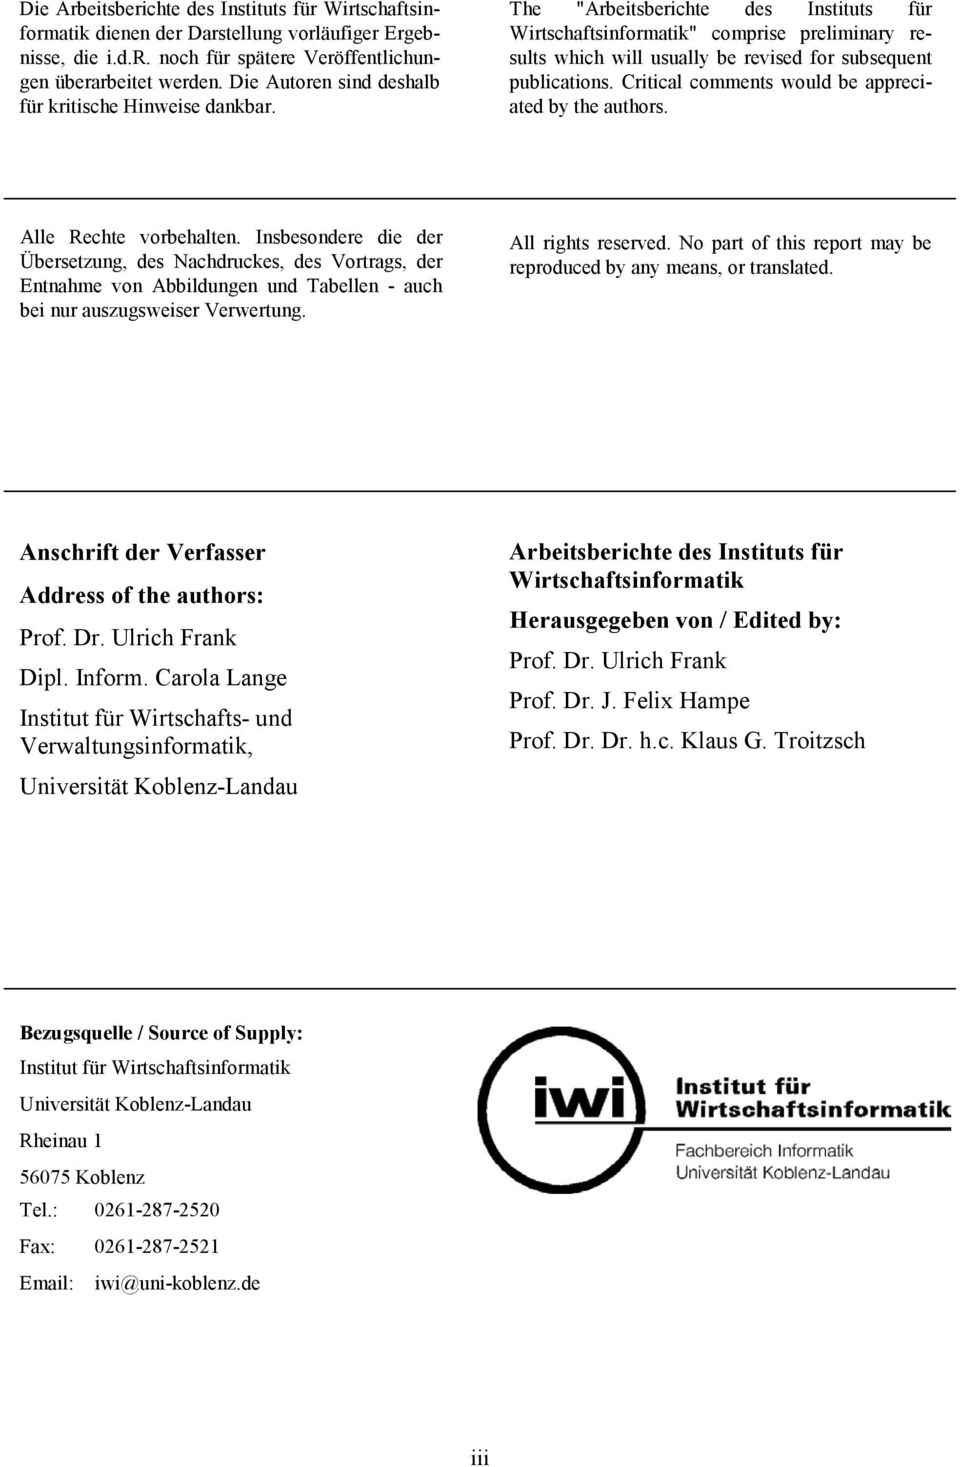 "The ""Arbeitsberichte des Instituts für Wirtschaftsinformatik"" comprise preliminary results which will usually be revised for subsequent publications."